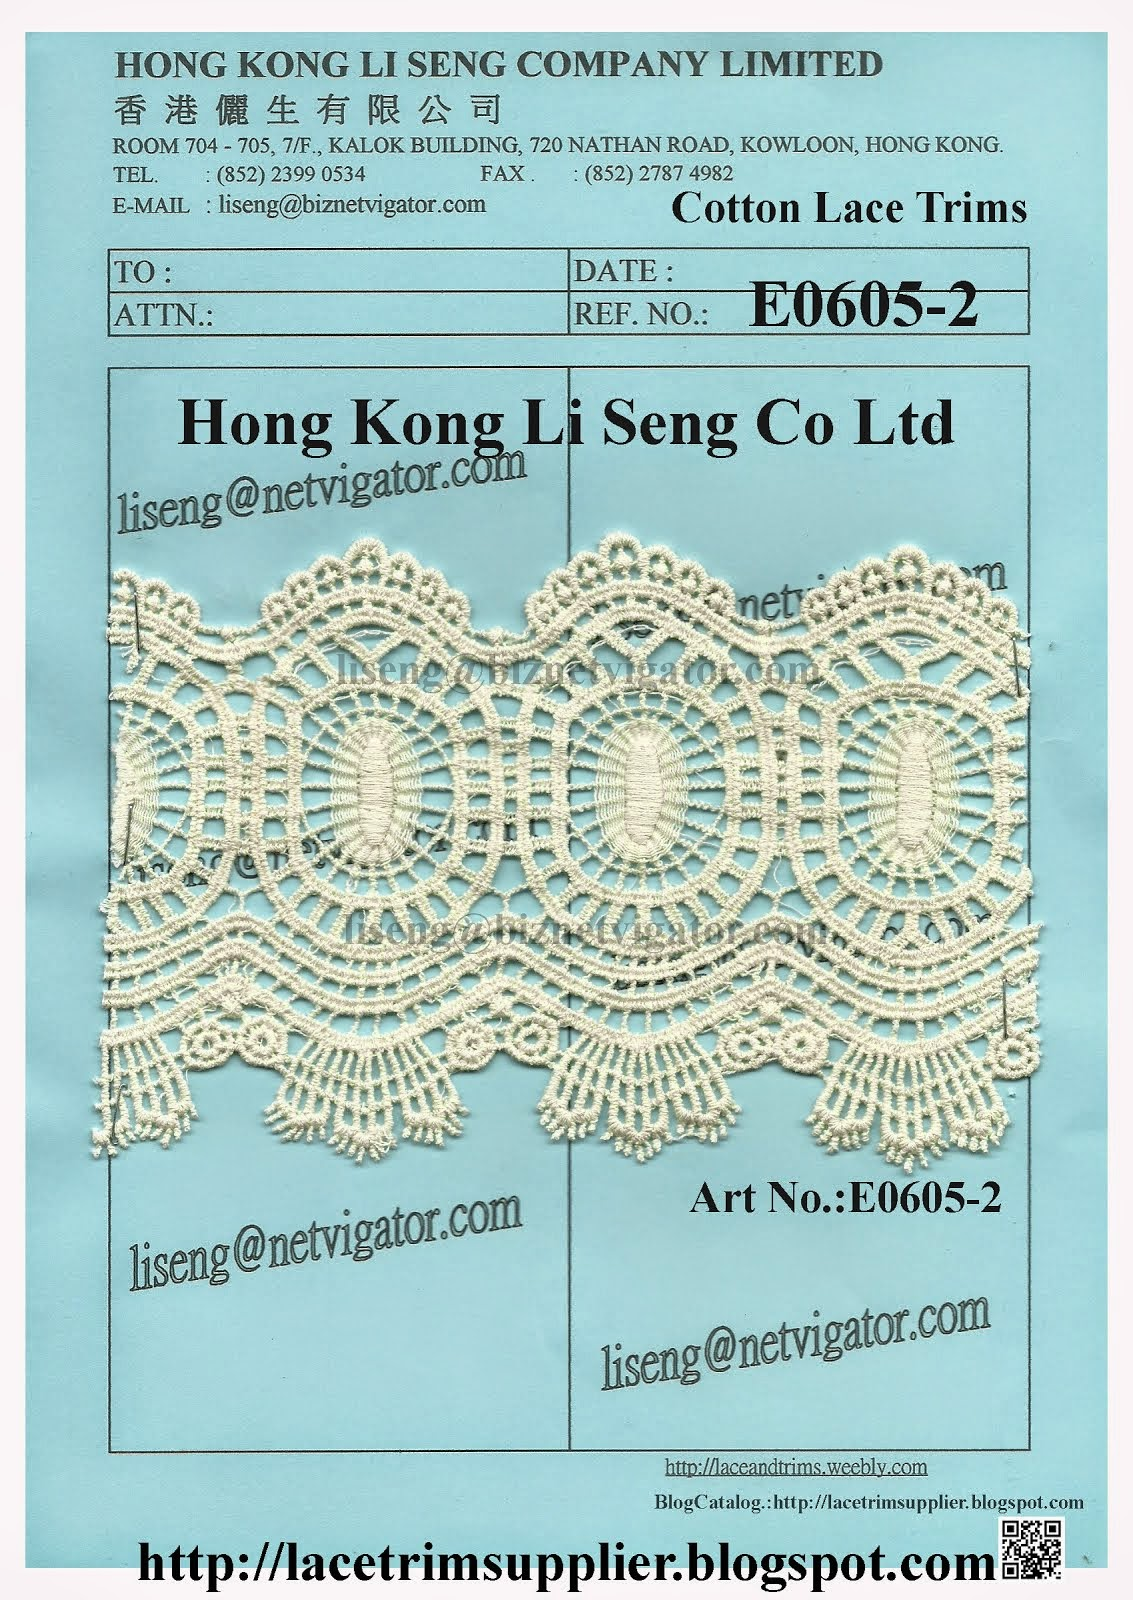 Cotton Lace Trims Manufacturer - Hong Kong Li Seng Co Ltd